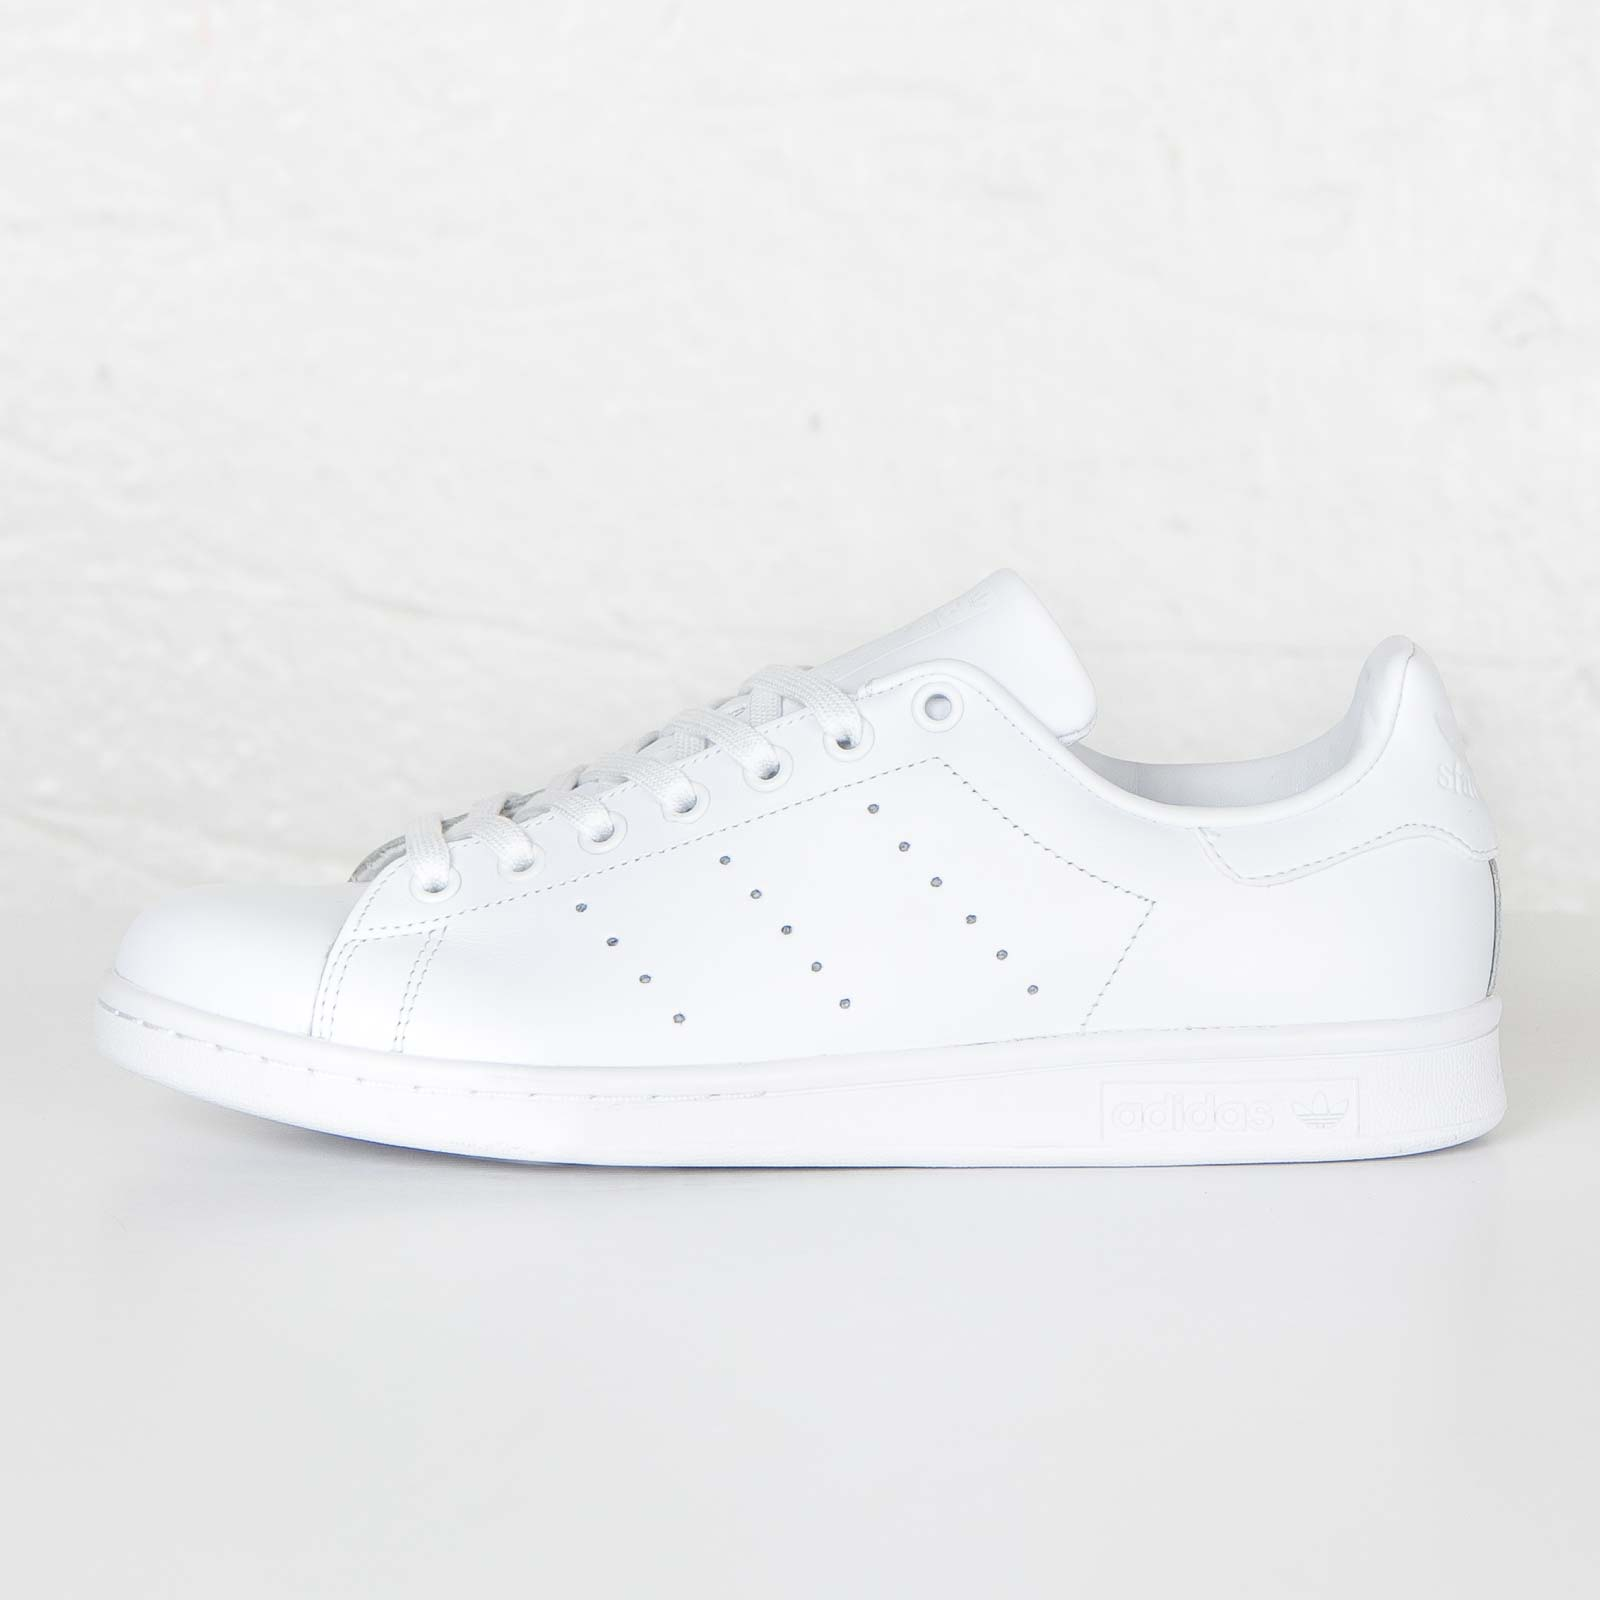 outlet store 402b5 0d0bc adidas Stan Smith - S75104 - Sneakersnstuff | sneakers ...